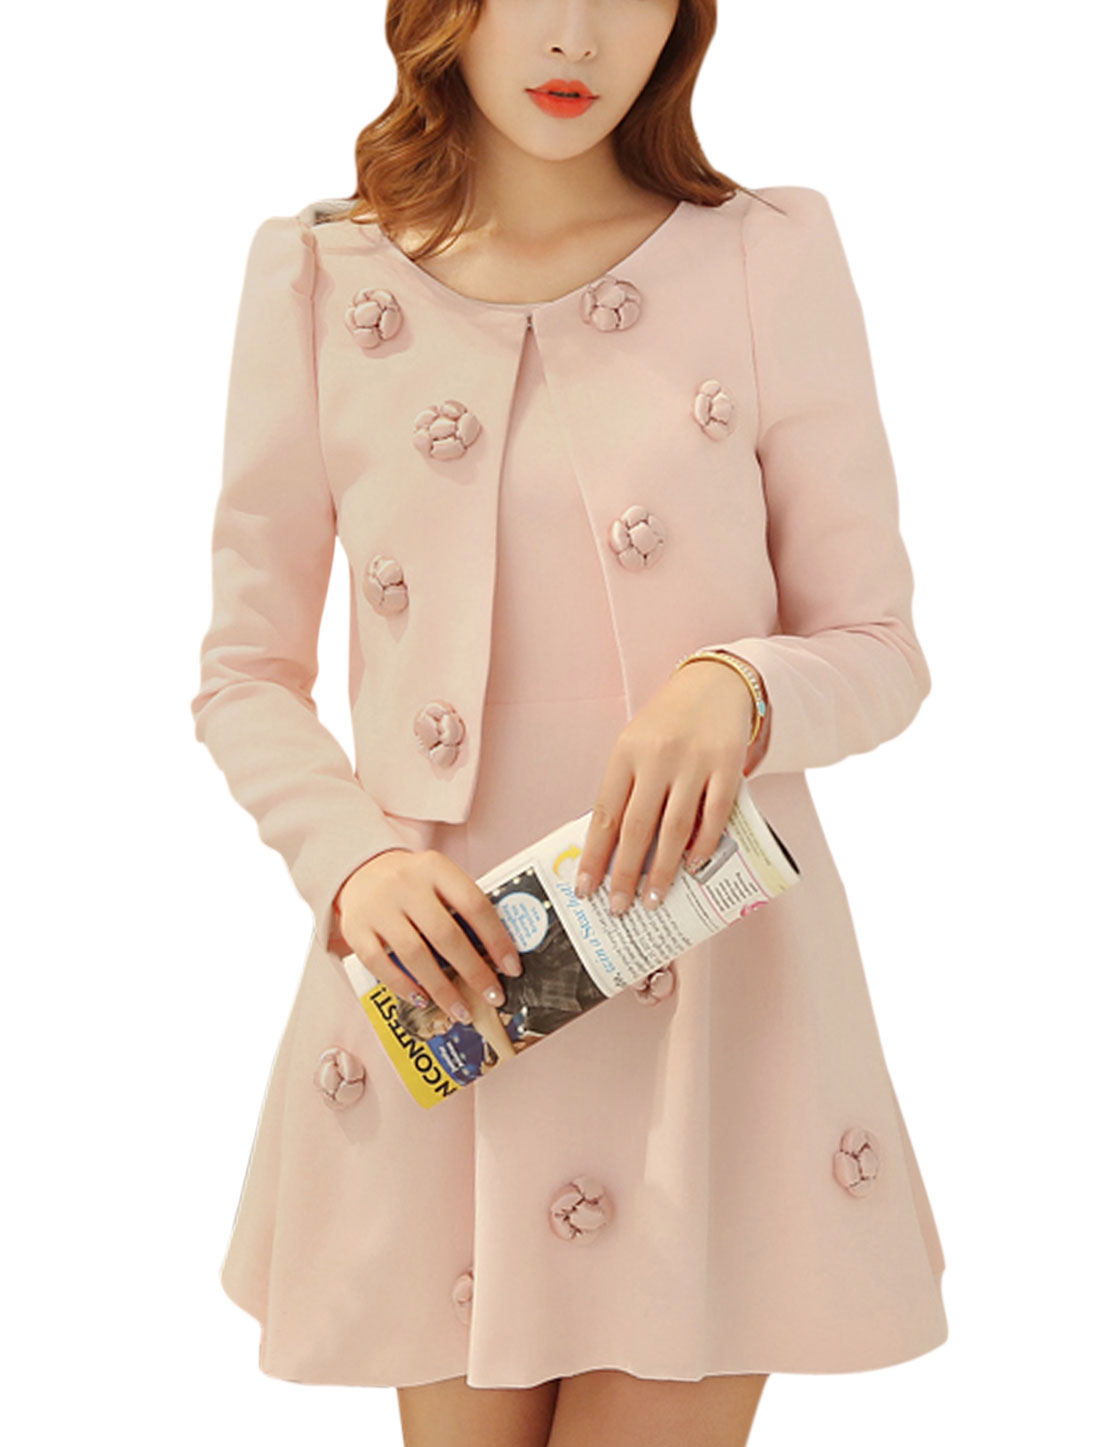 Lady Front Opening Casual Jacket w Hidden Zipper Back Soft Dress Light Pink S